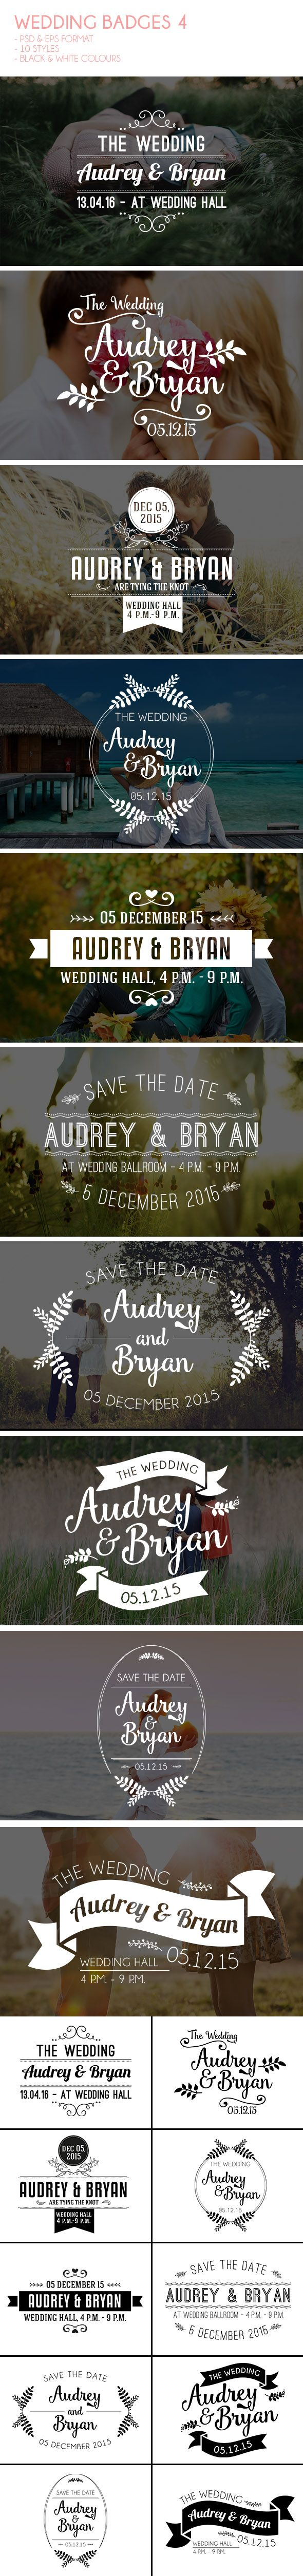 It is a wedding badges for your wedding web purposes or you can use it as Save The Date card, just simply put it in your images. Available on PSD and EPS vector format, all you need to do is just change text. I you like it and find it useful click on the link provided. :)